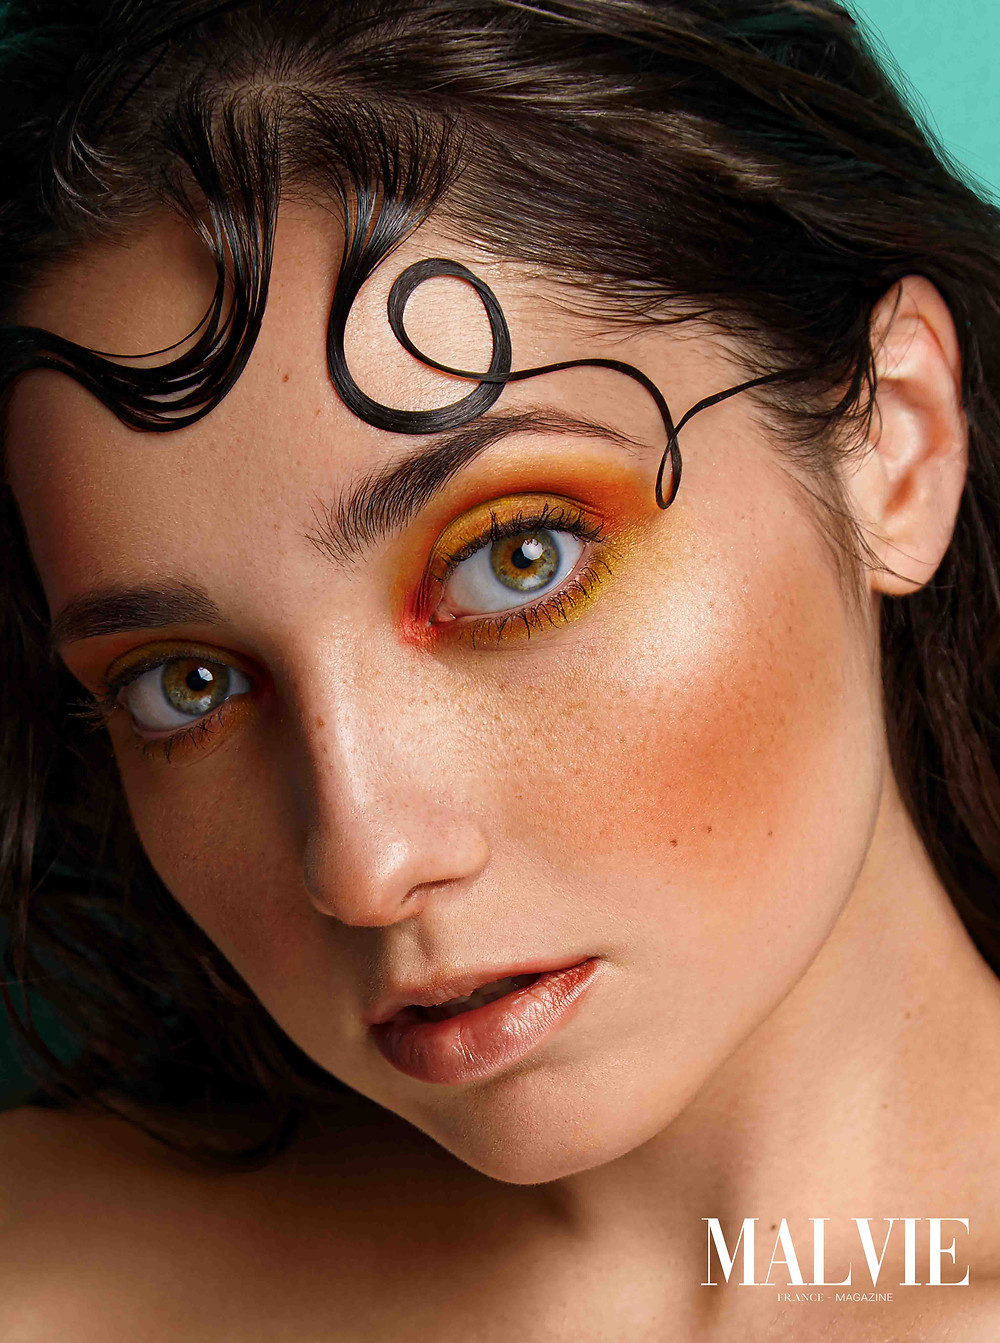 MALVIE Magazine Editorial - The September ISSUE Beauty Shooting photographed by Borys Zazimko